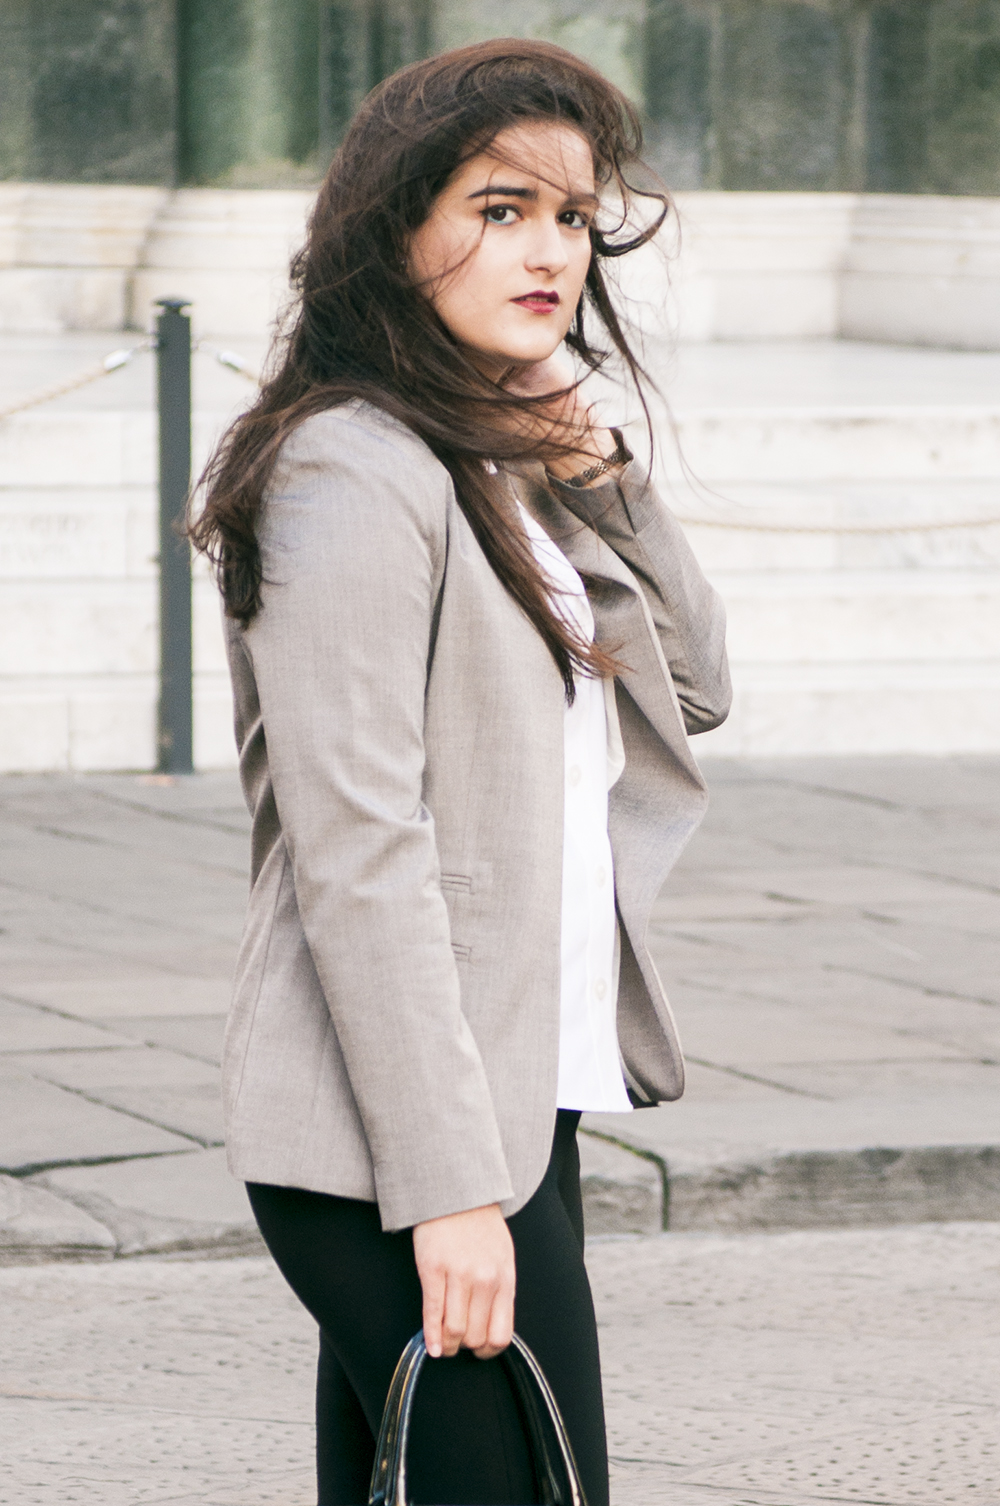 something fashion blogger influencer streetstyle spain valencia outfits firenze italy what to wear casual_0218